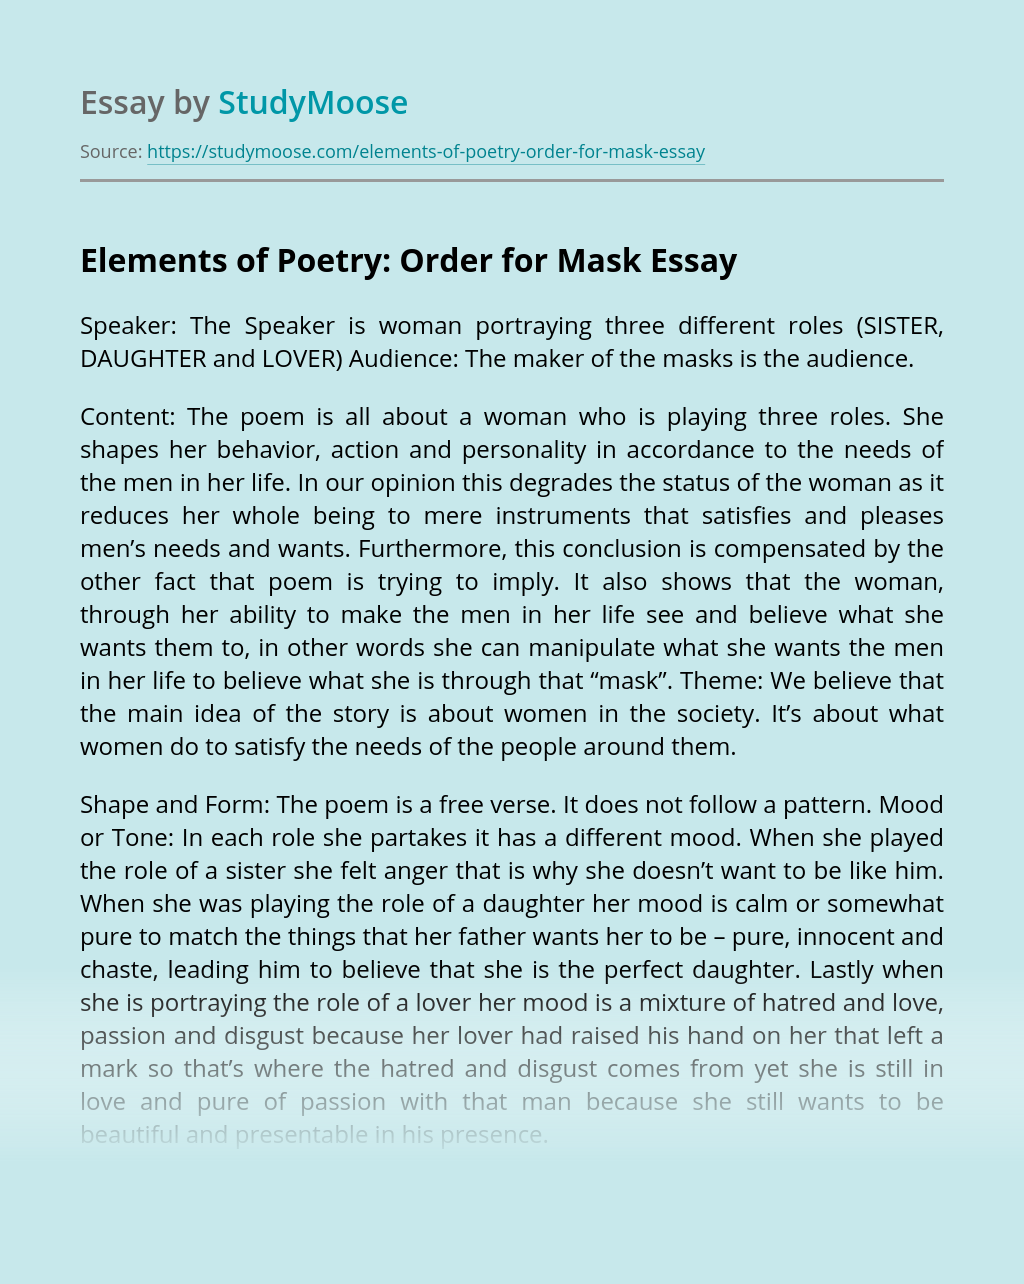 Elements of Poetry: Order for Mask